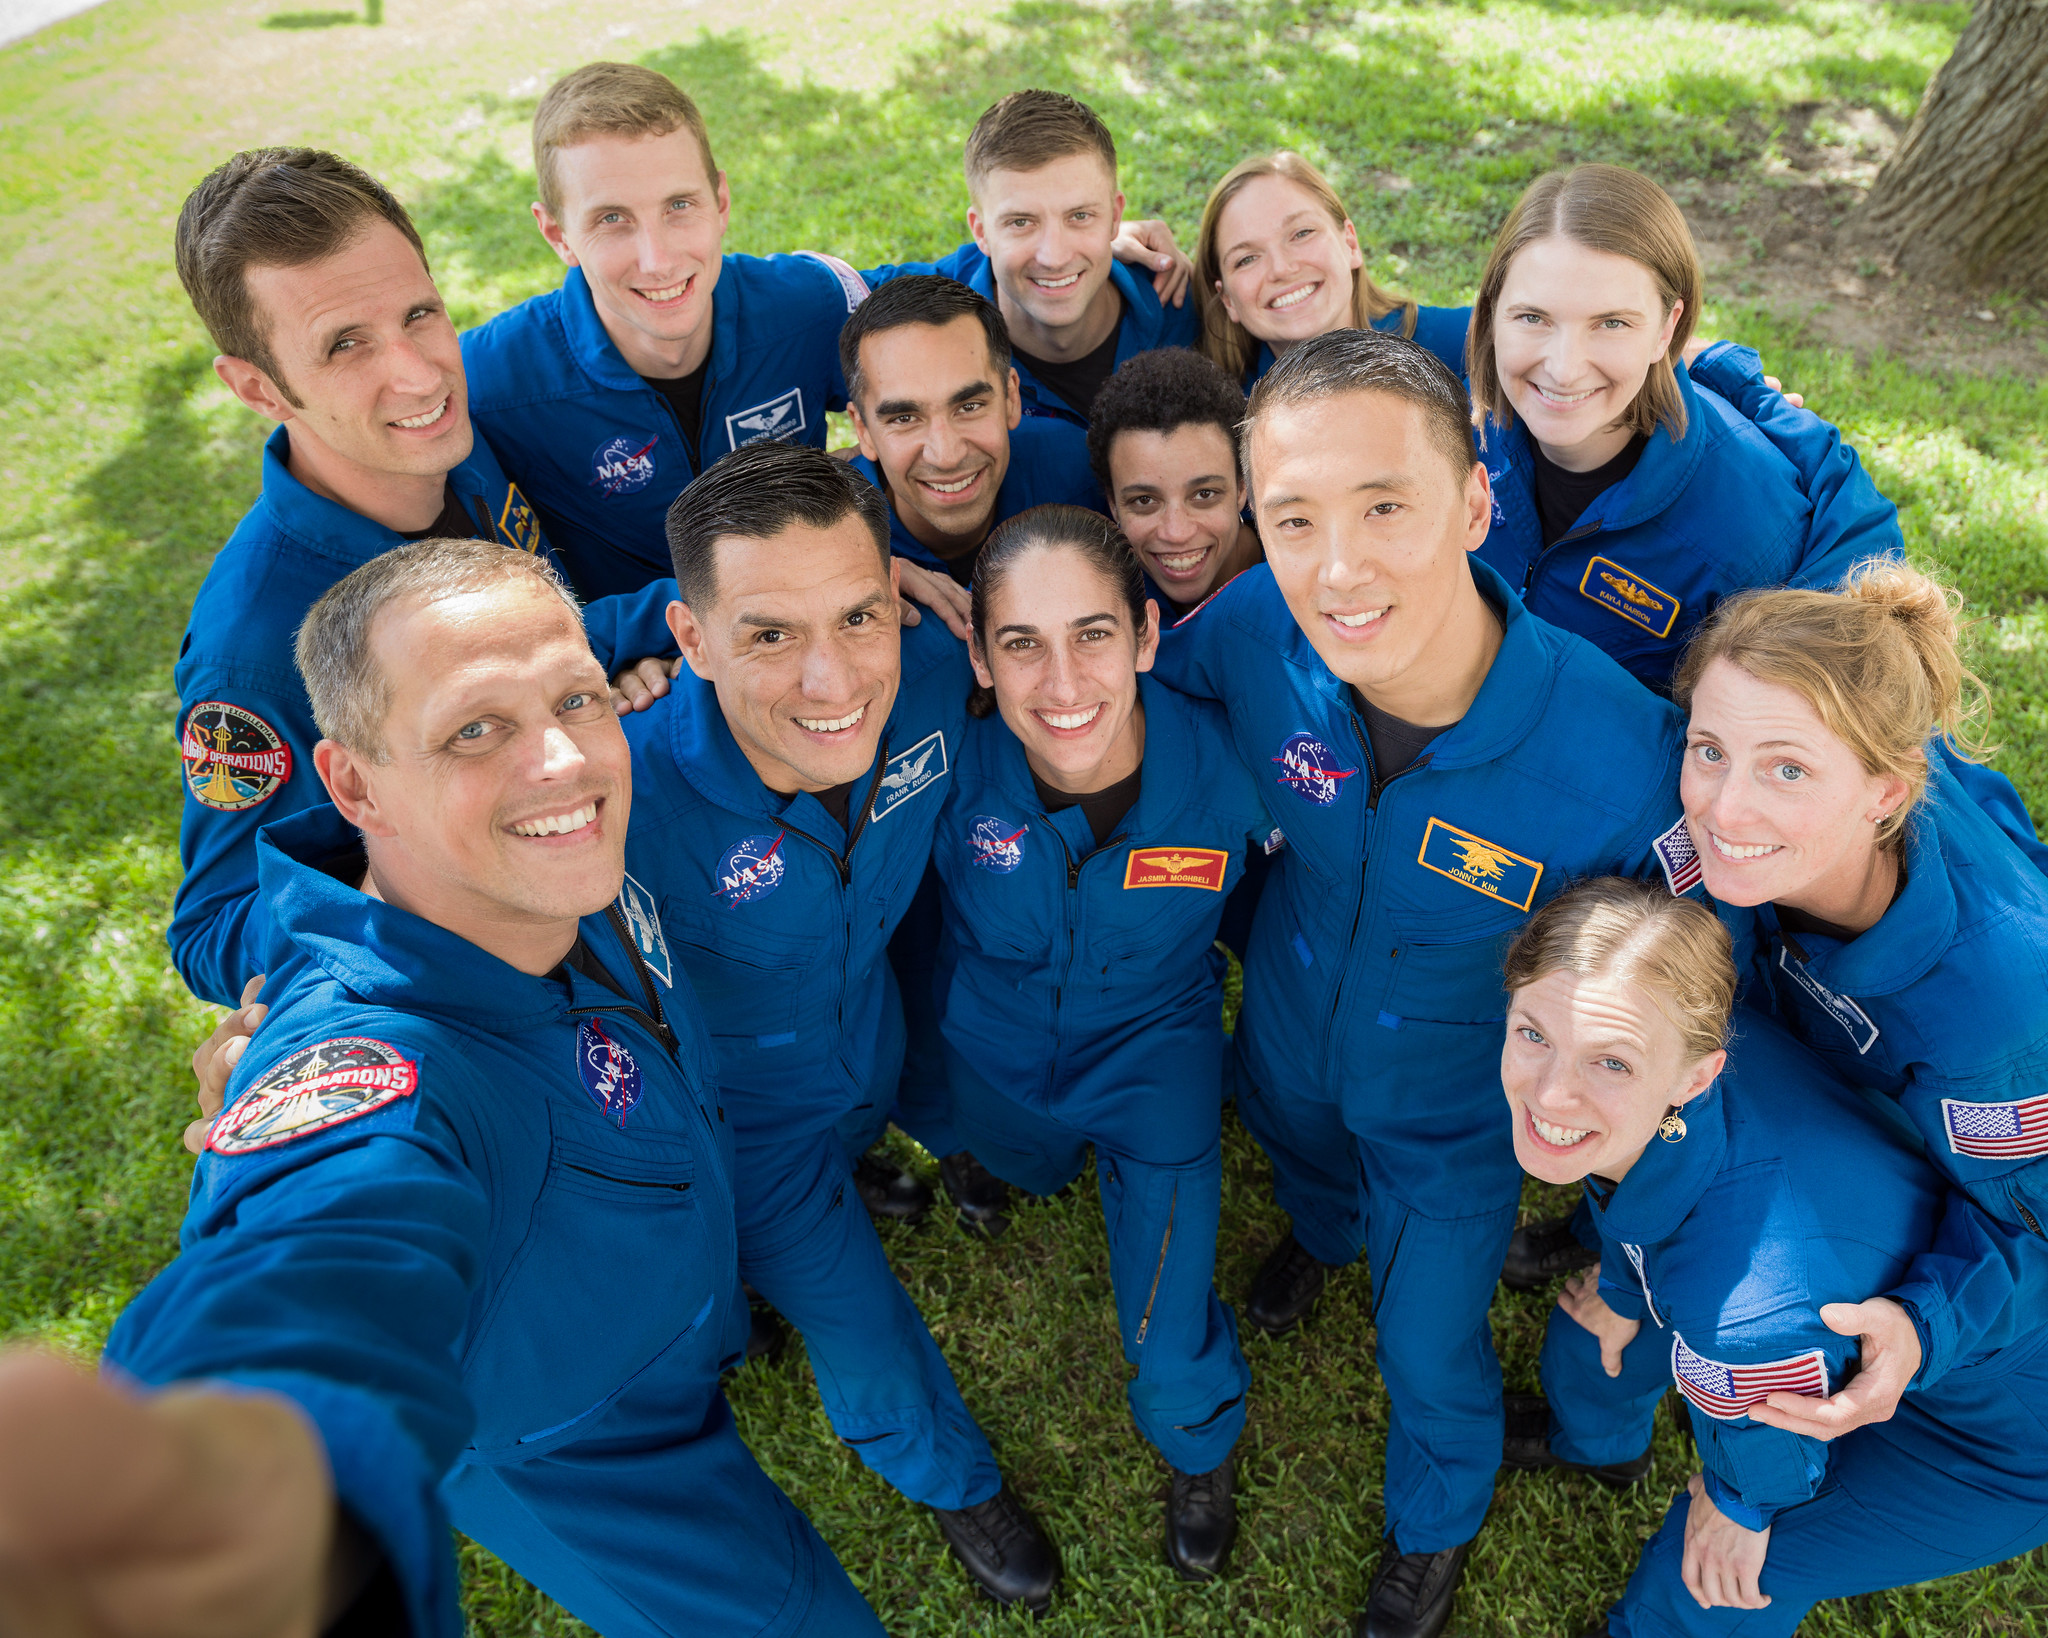 Geek Insider, NASA astronaut graduates 2020, Artemis program, venturing into space, International Space Station, ISS, merej99, Meredith Loughran